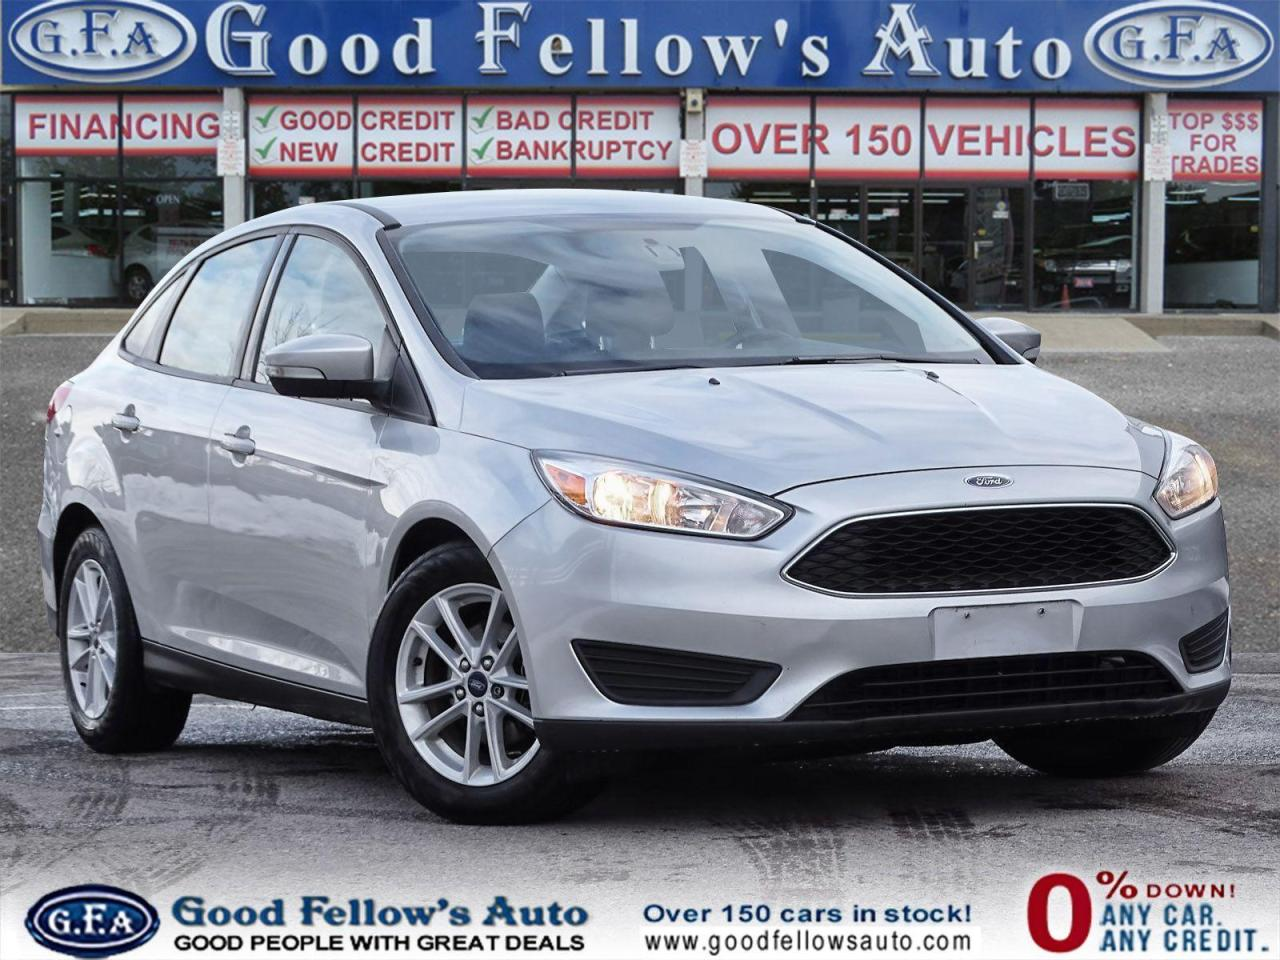 used 2017 Ford Focus car, priced at $8,400